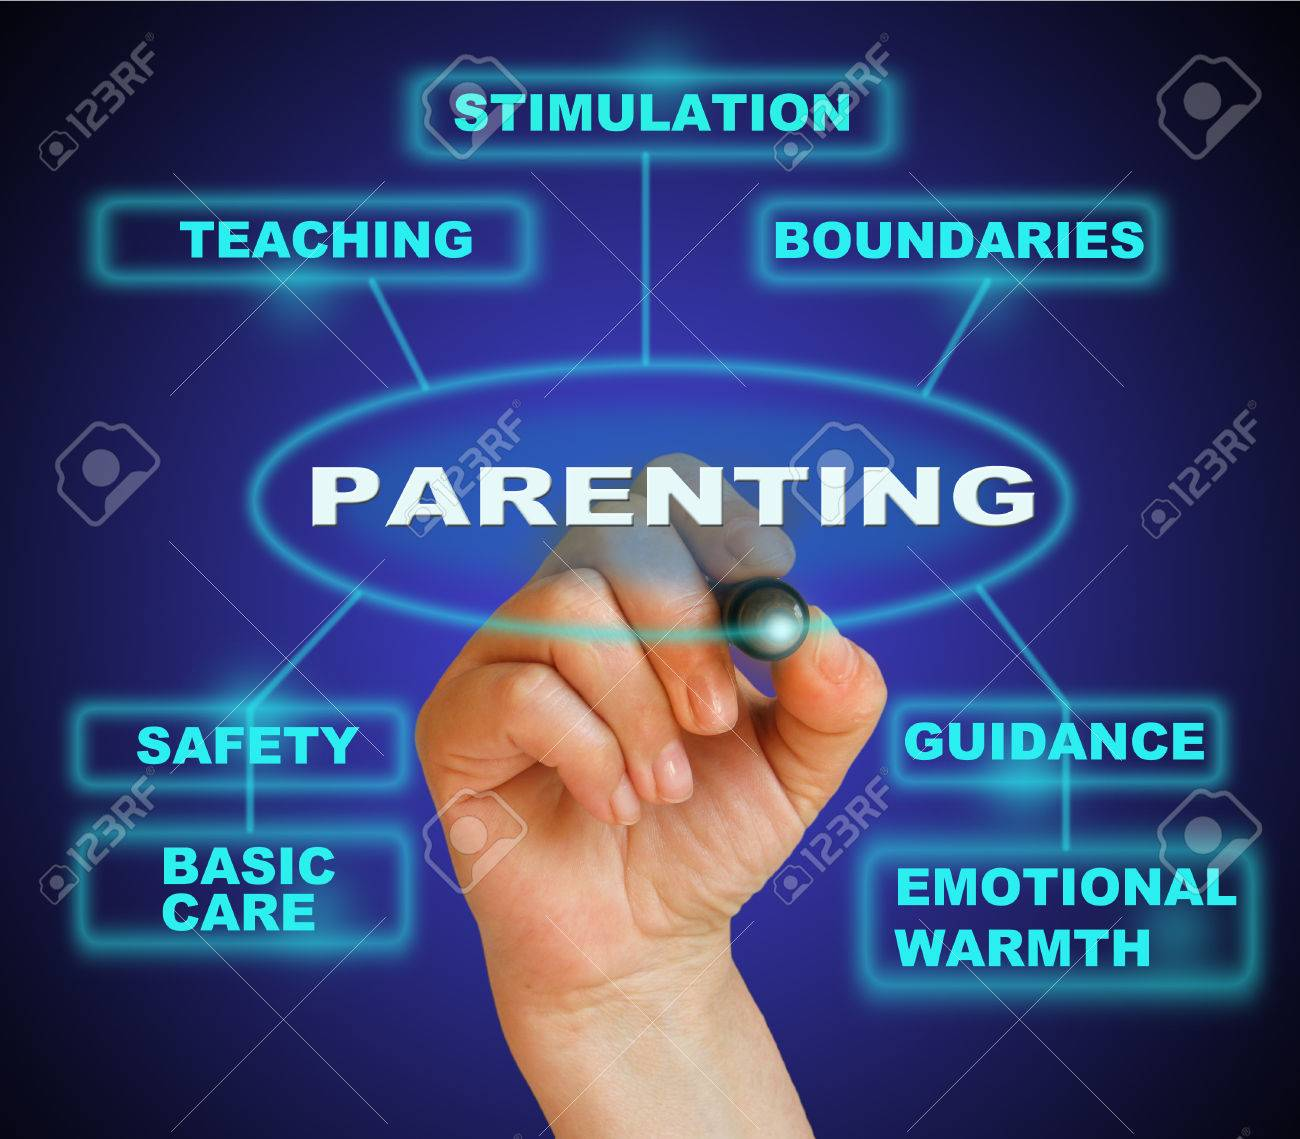 writing words PARENTING marketing on gradient background made in 2d software - 28876787